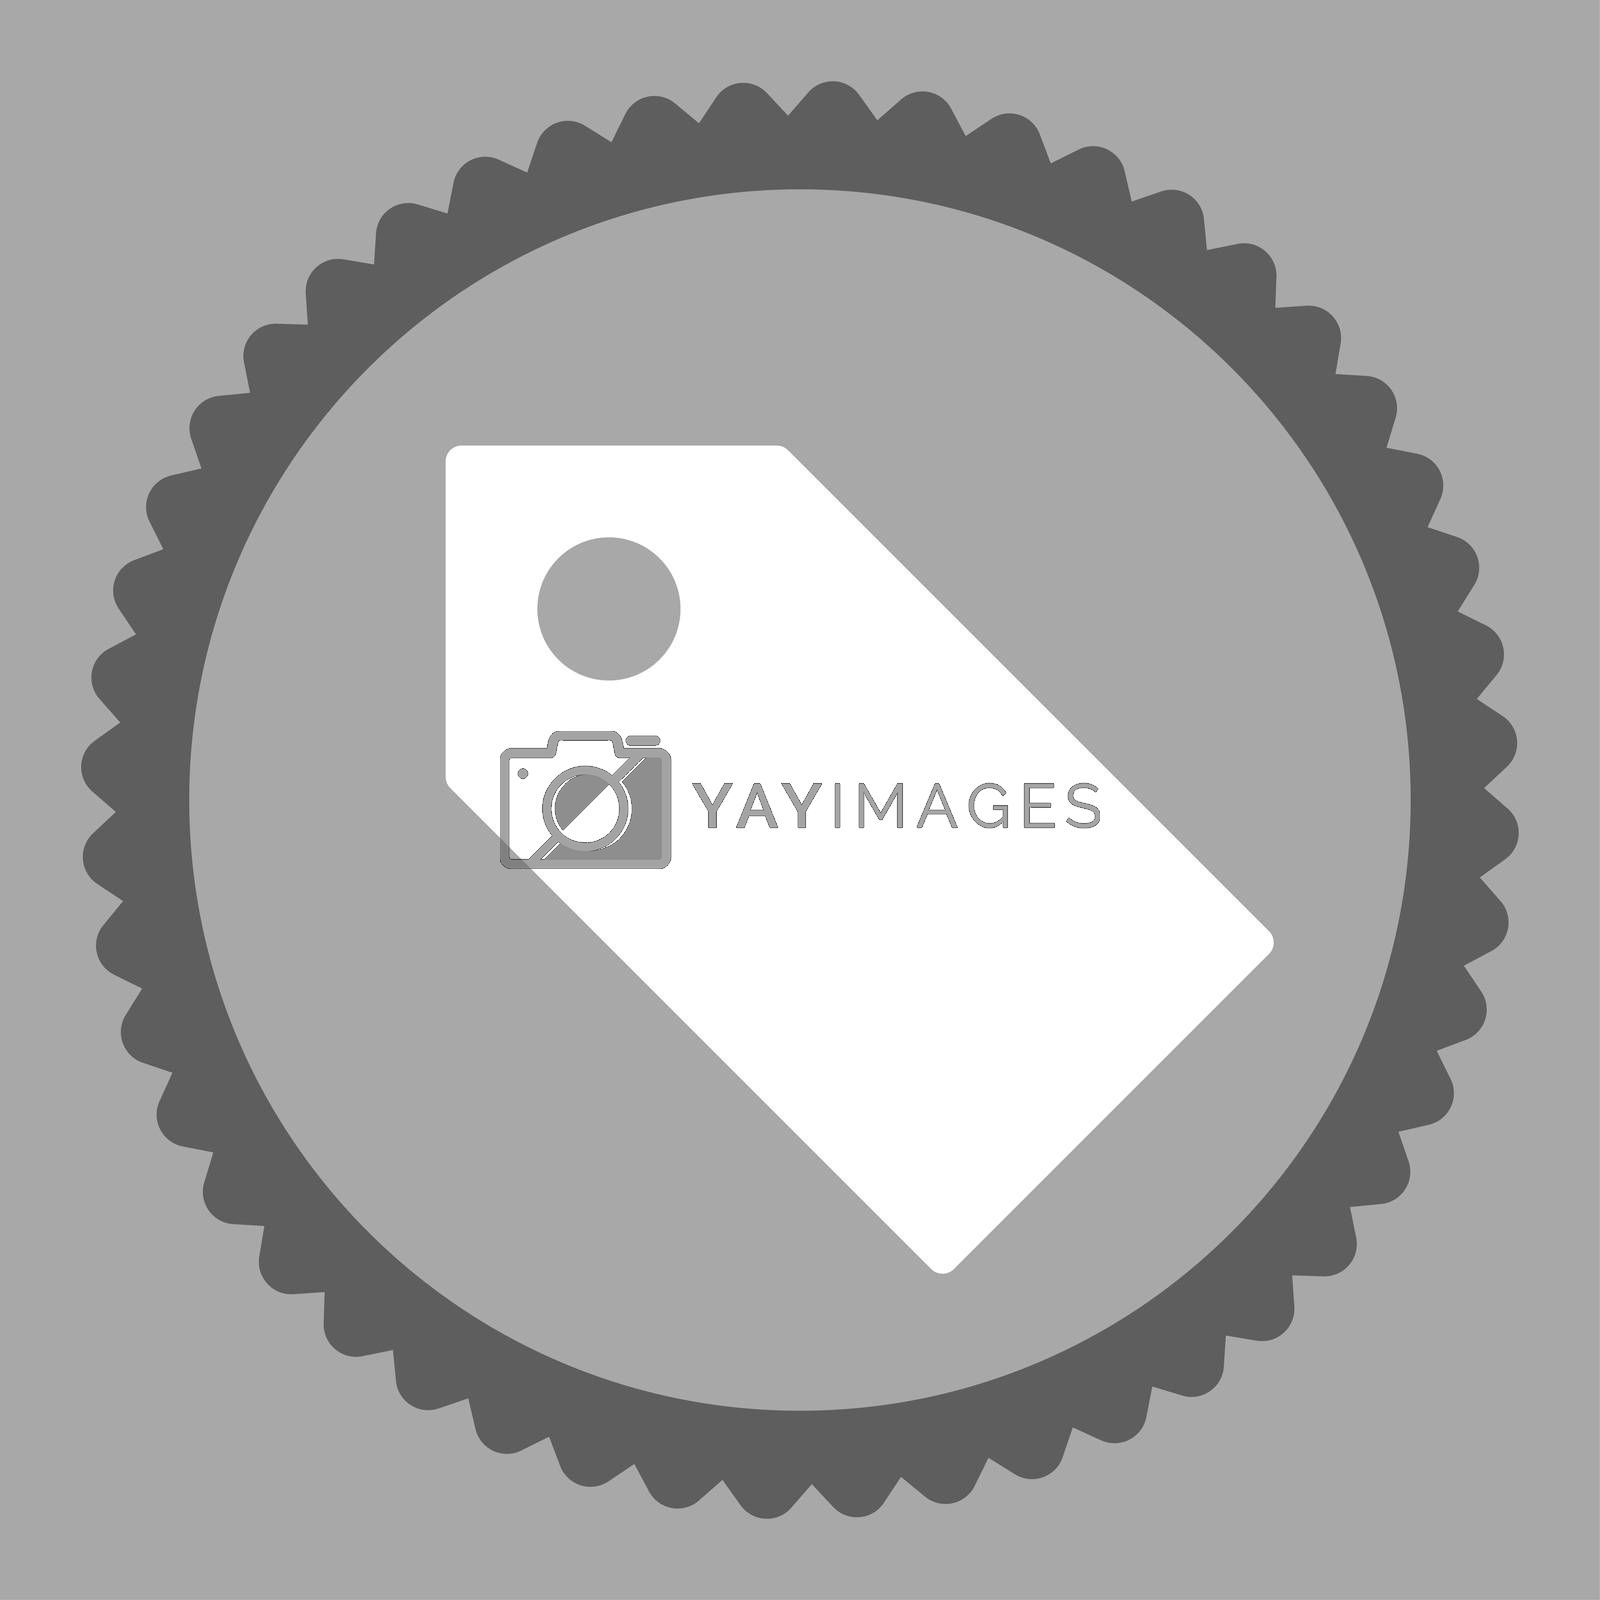 Tag flat dark gray and white colors round stamp icon by Aha-Soft